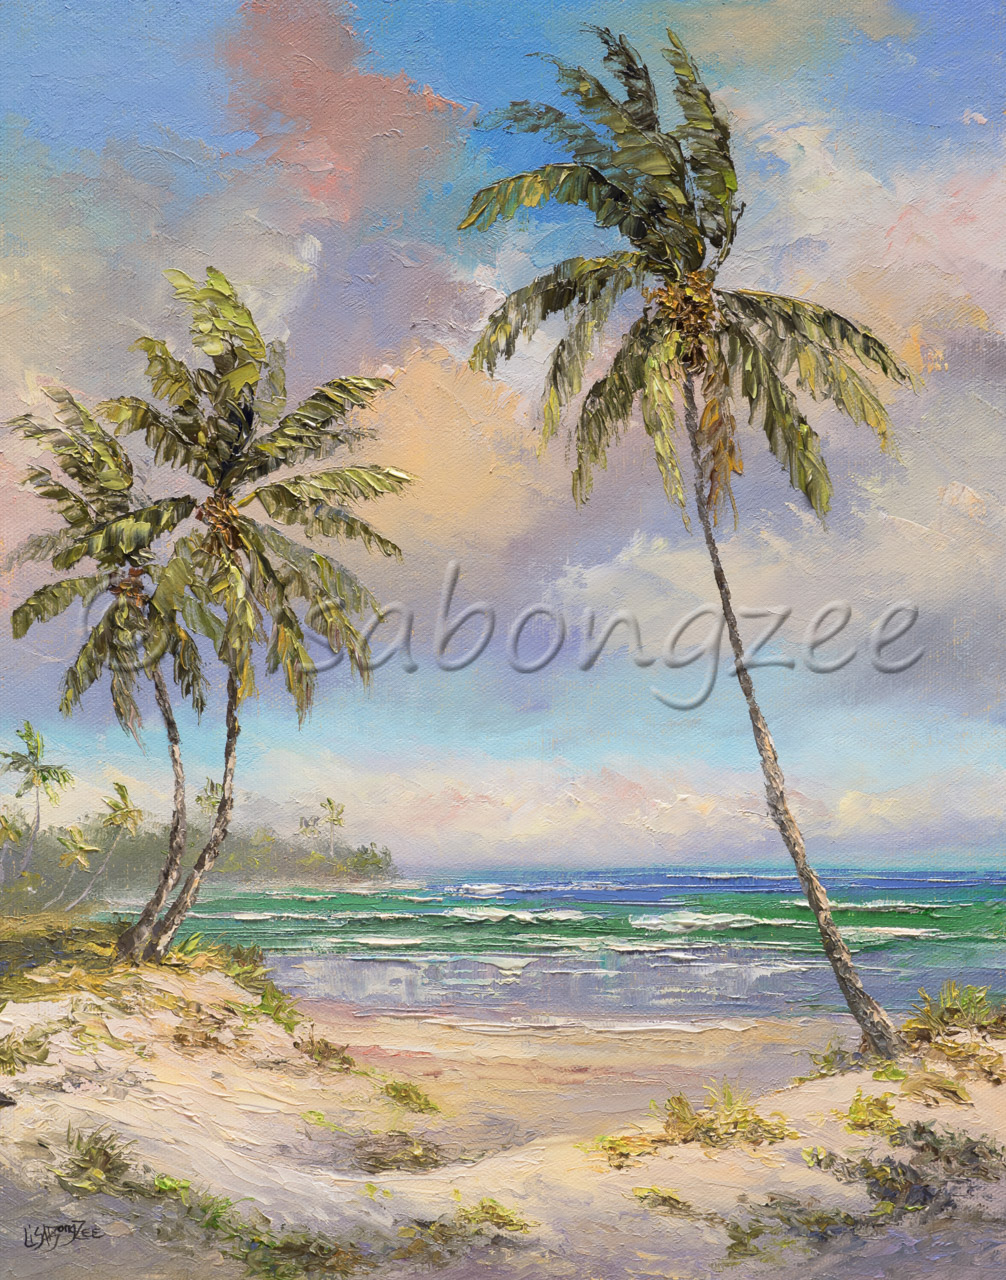 original oil painting of three palm trees on a sandy beach with pastel skies and waves crashing offshore